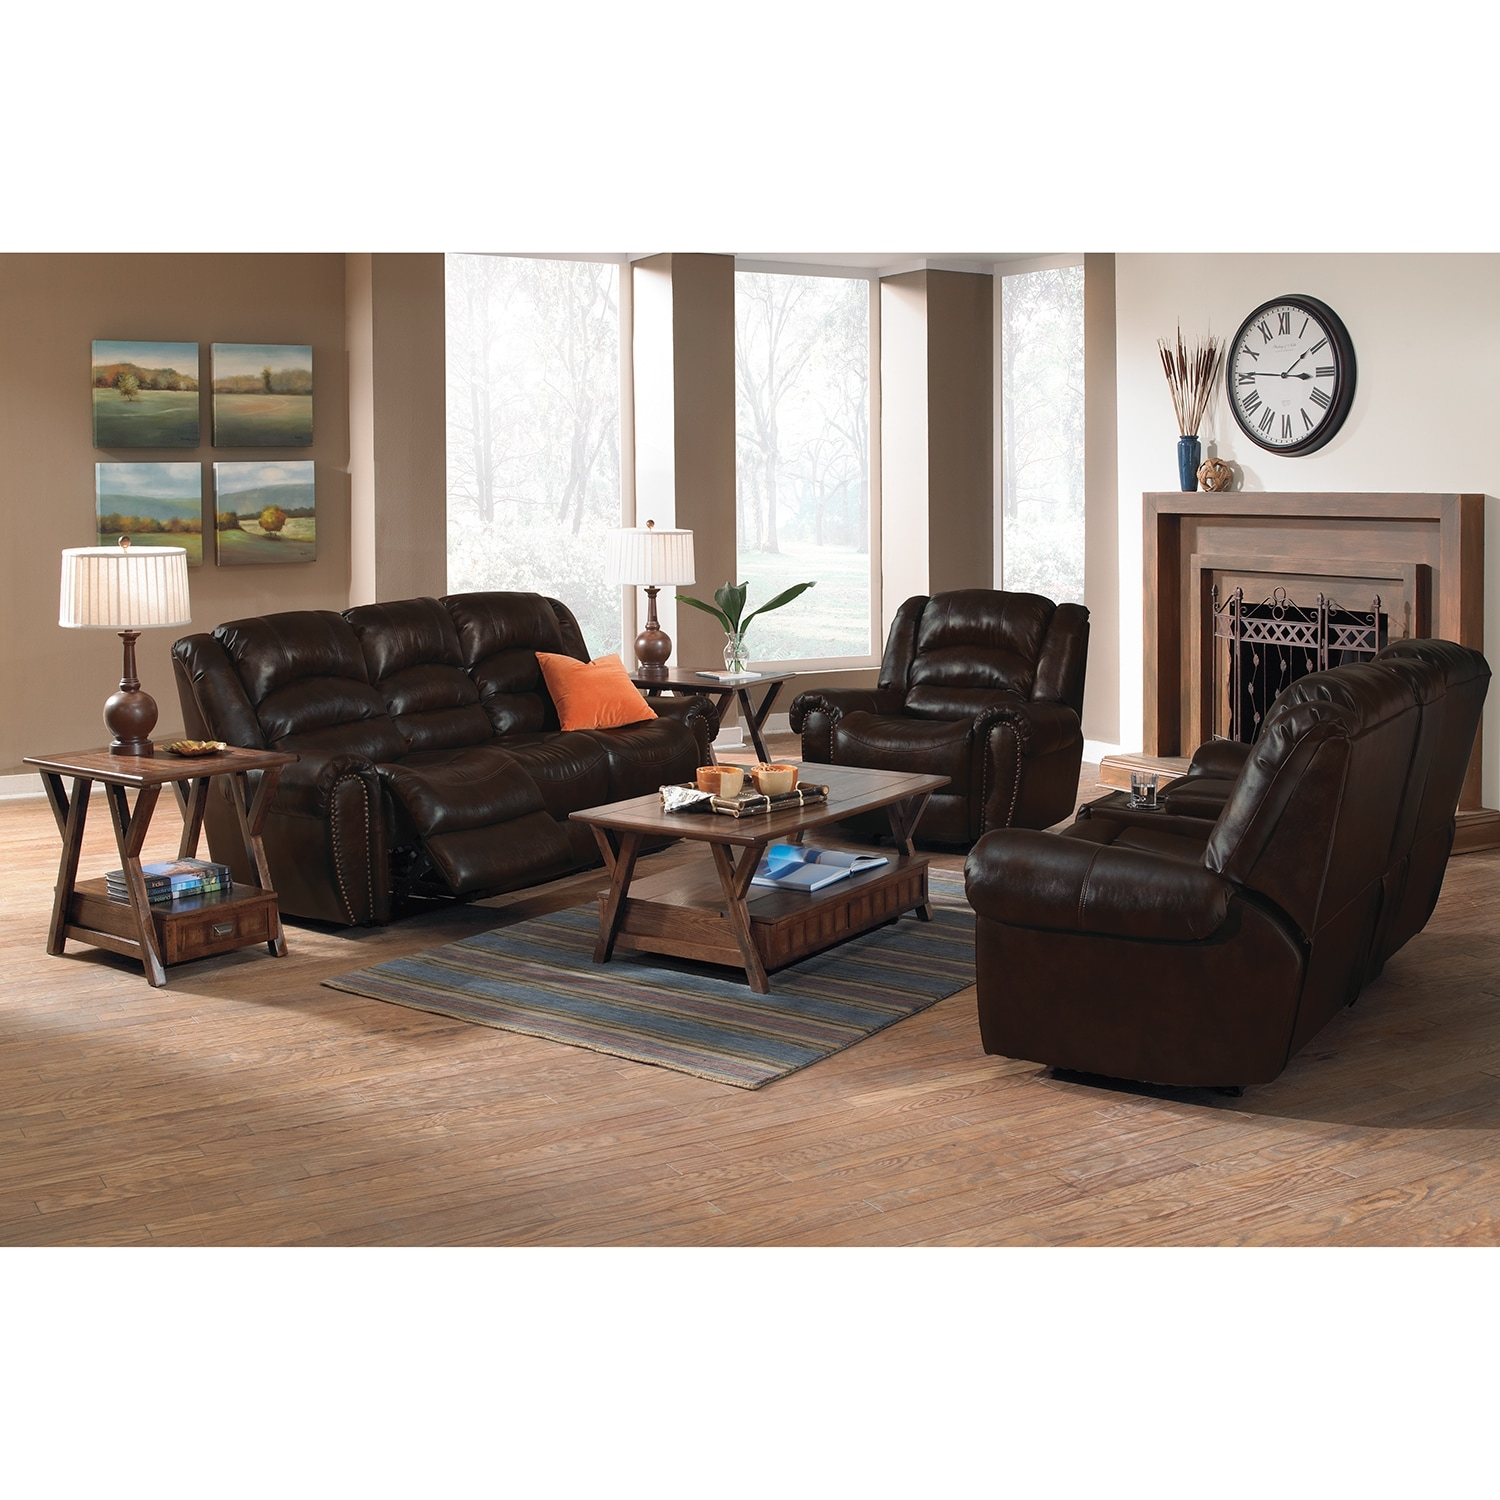 living room furniture packages american signature furniture wansford living room package edinburgh furnishing store